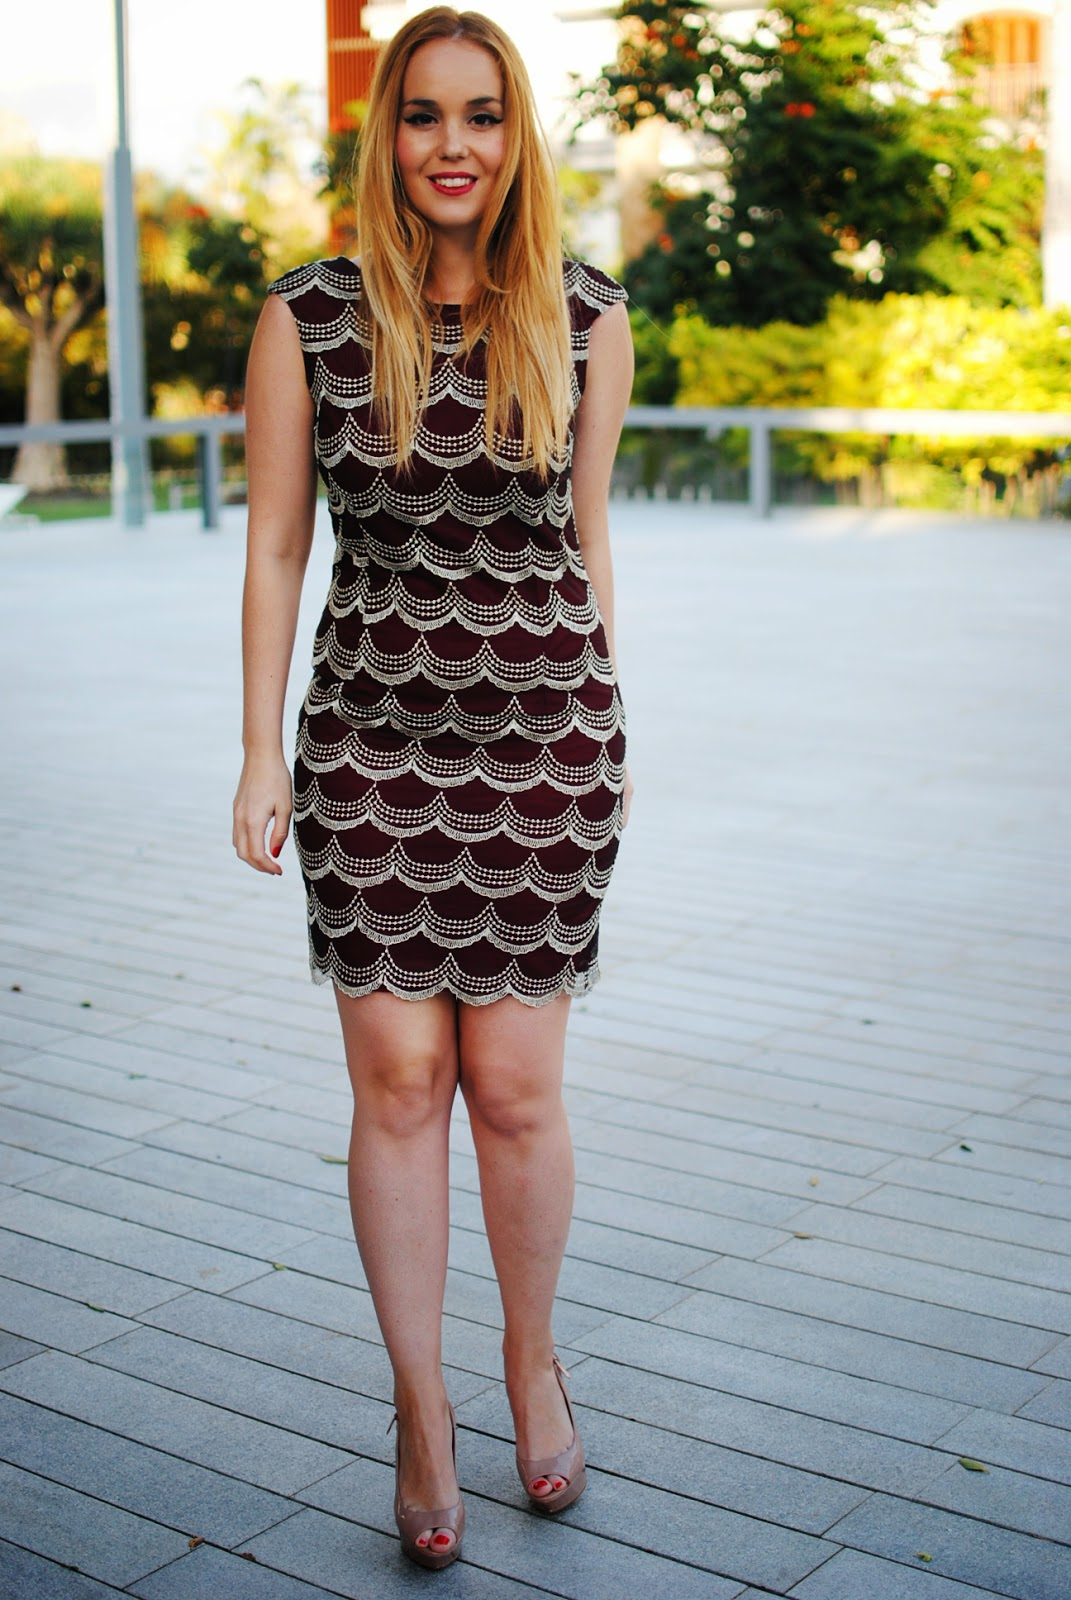 nery hdez, blonde, chichi clothes, burgundy dress